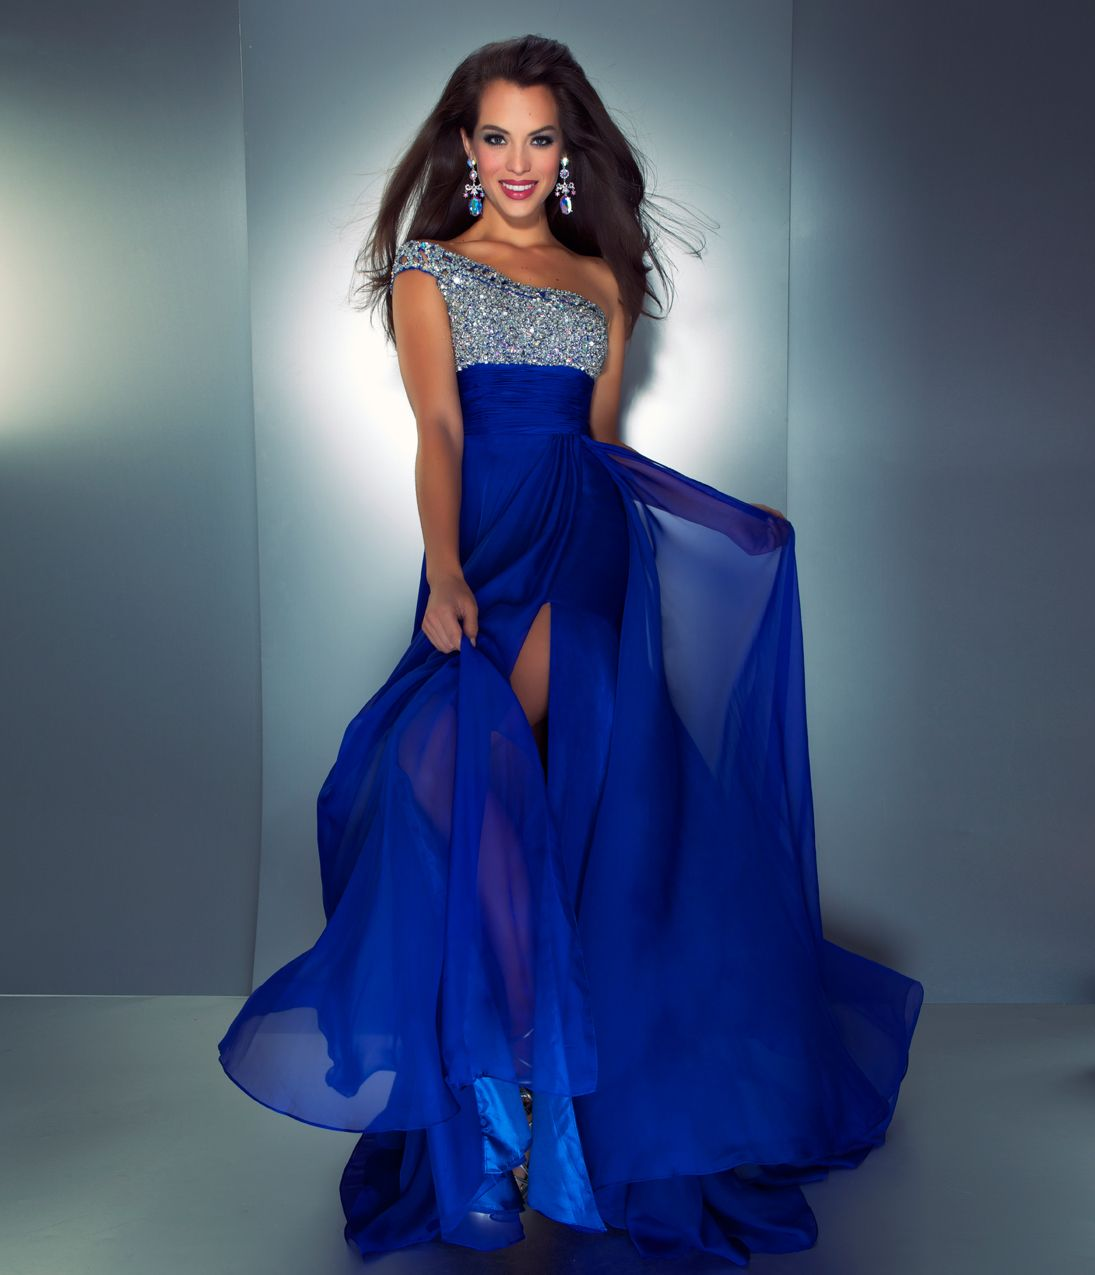 Collection Prom Dresses Royal Blue Pictures - Reikian